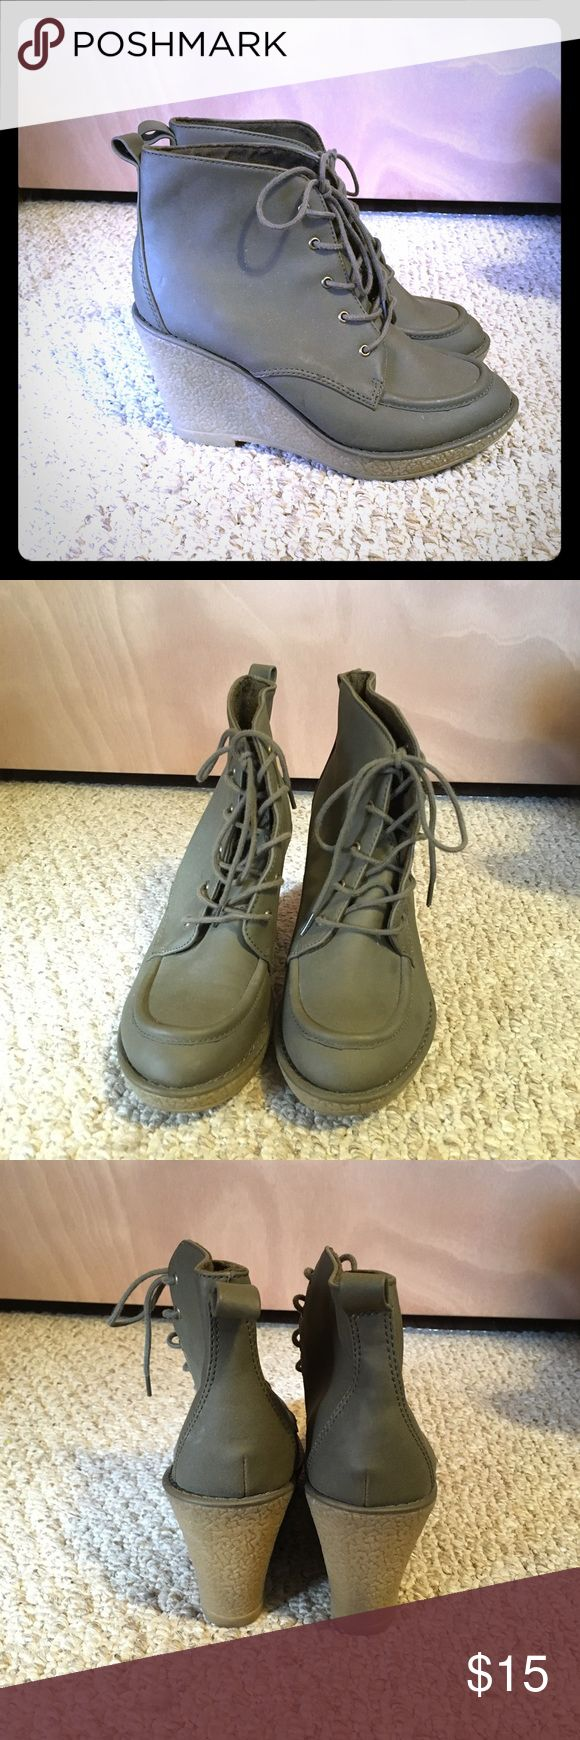 Old Navy Wedge Boots Cute Old Navy Wedge Boots in Good Condition  Heel is about 3.75 in  Make an Offer! Old Navy Shoes Heeled Boots